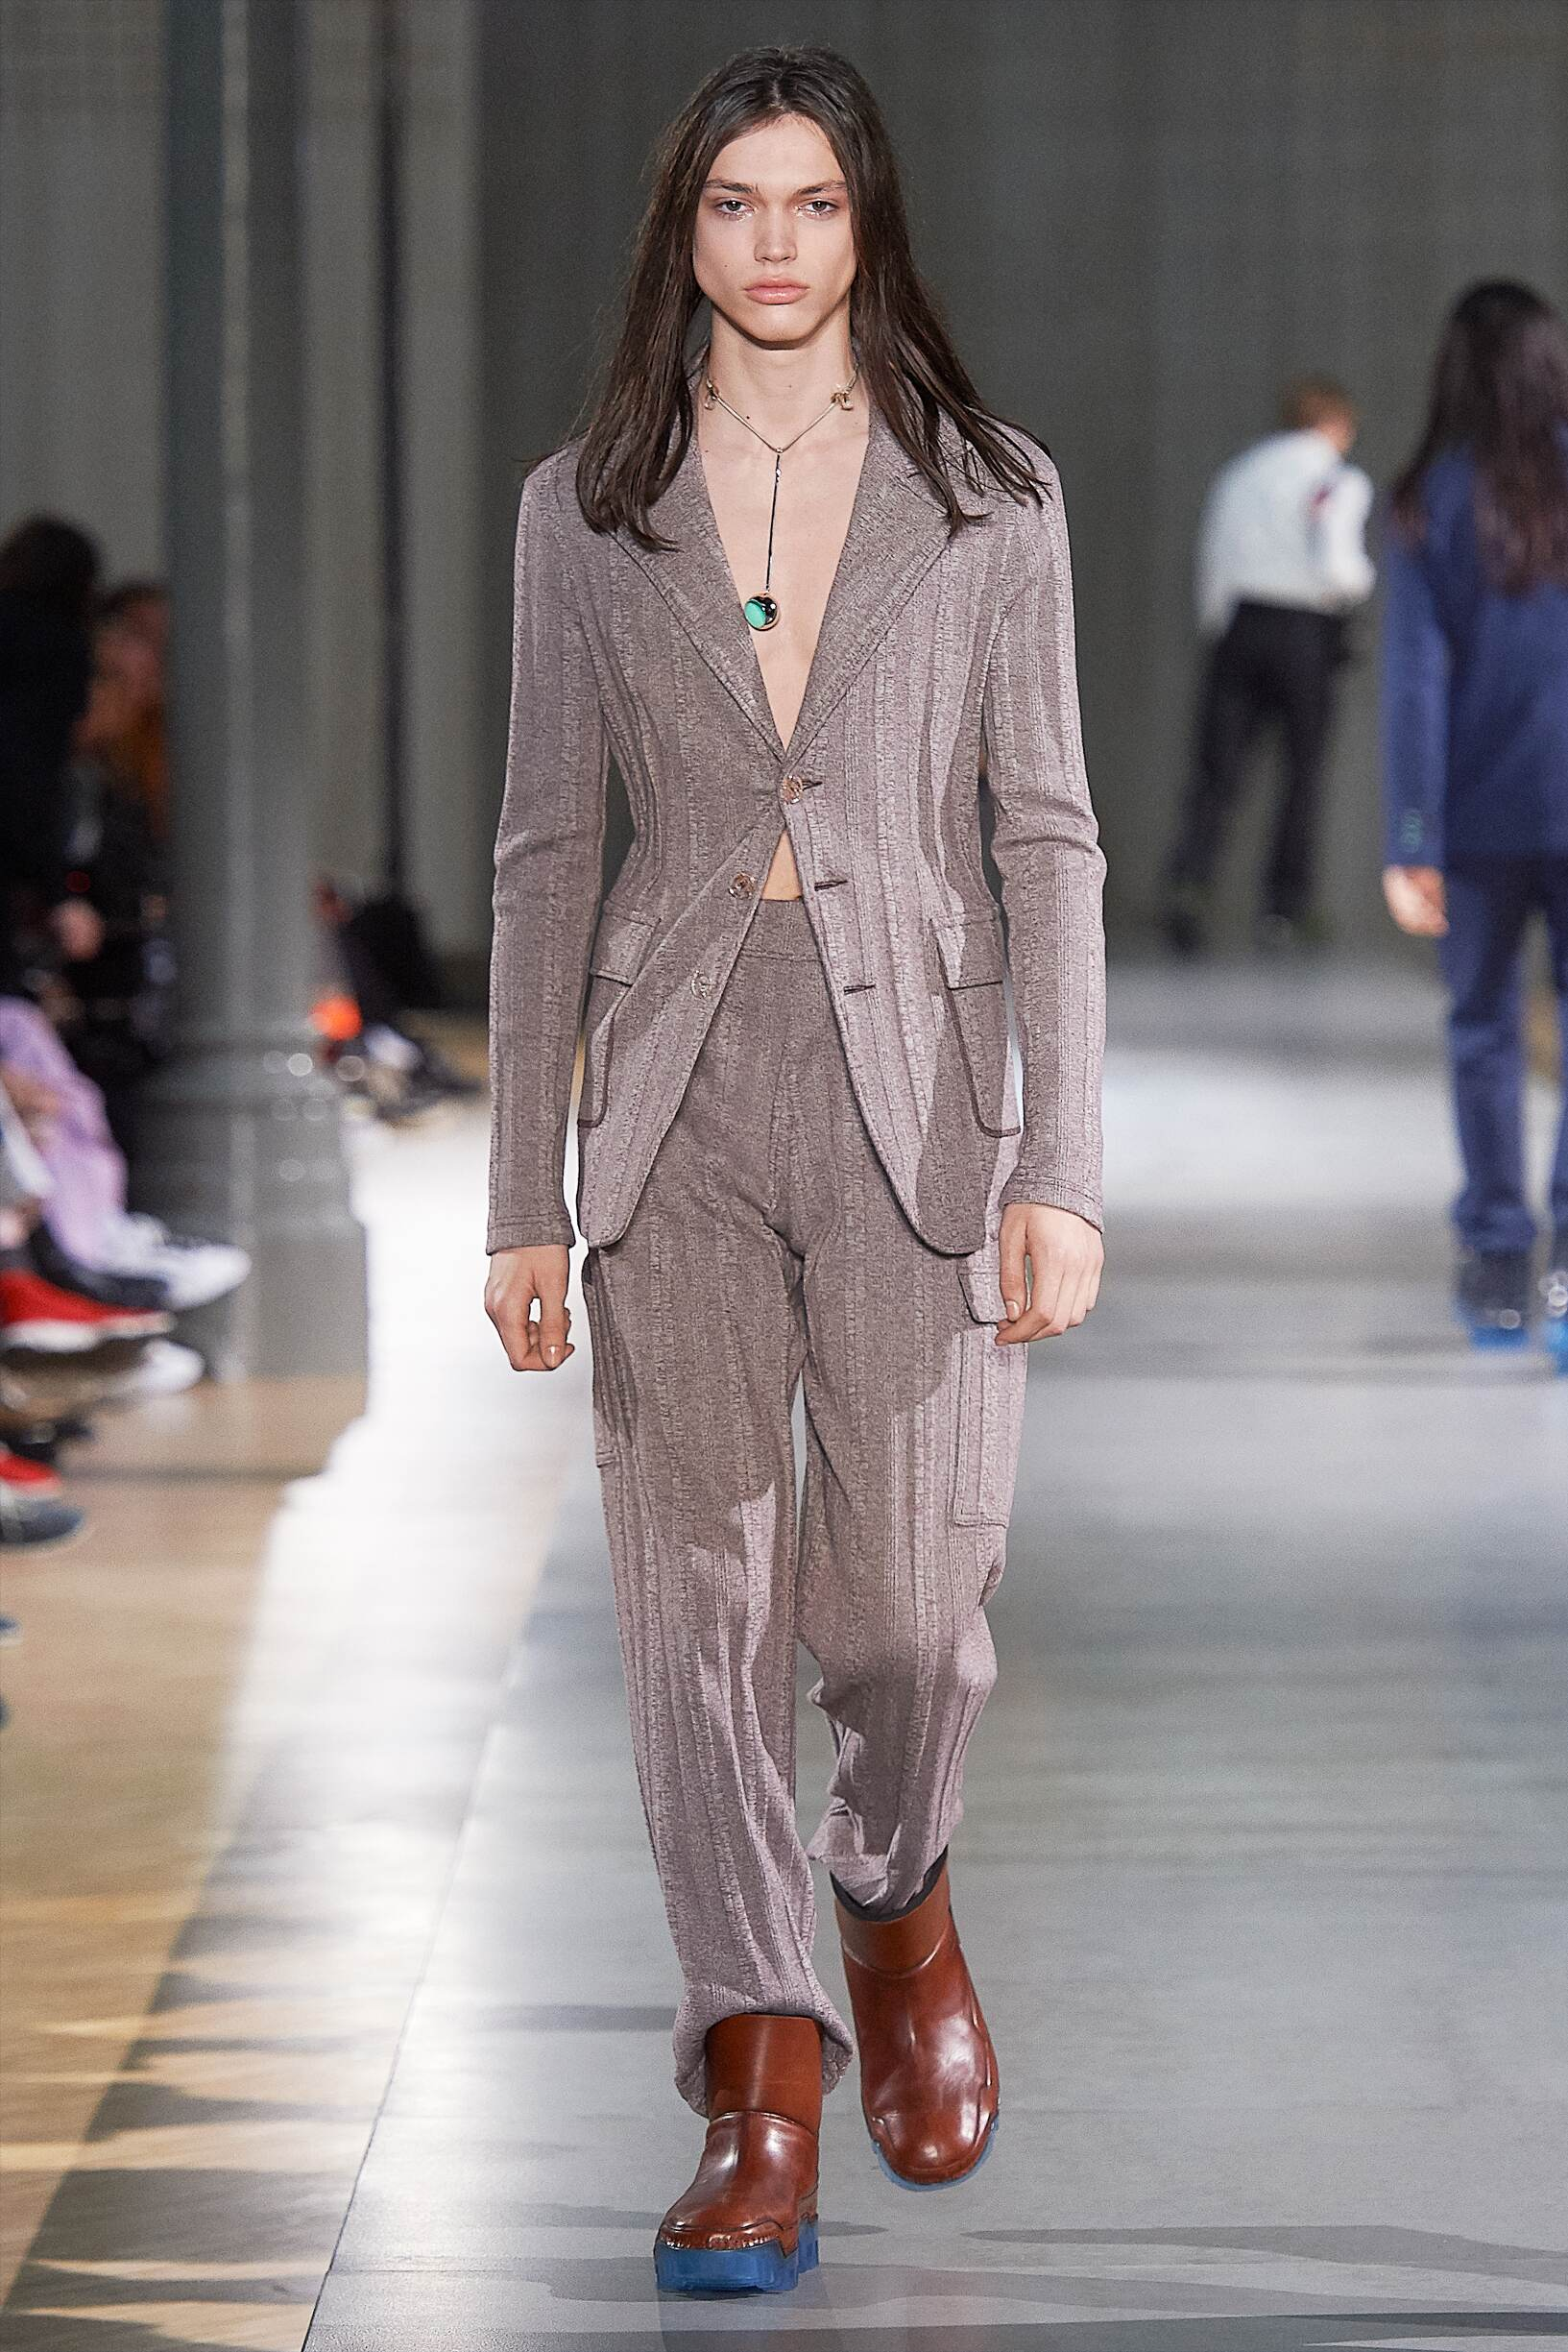 Acne Studios Menswear Fashion Show